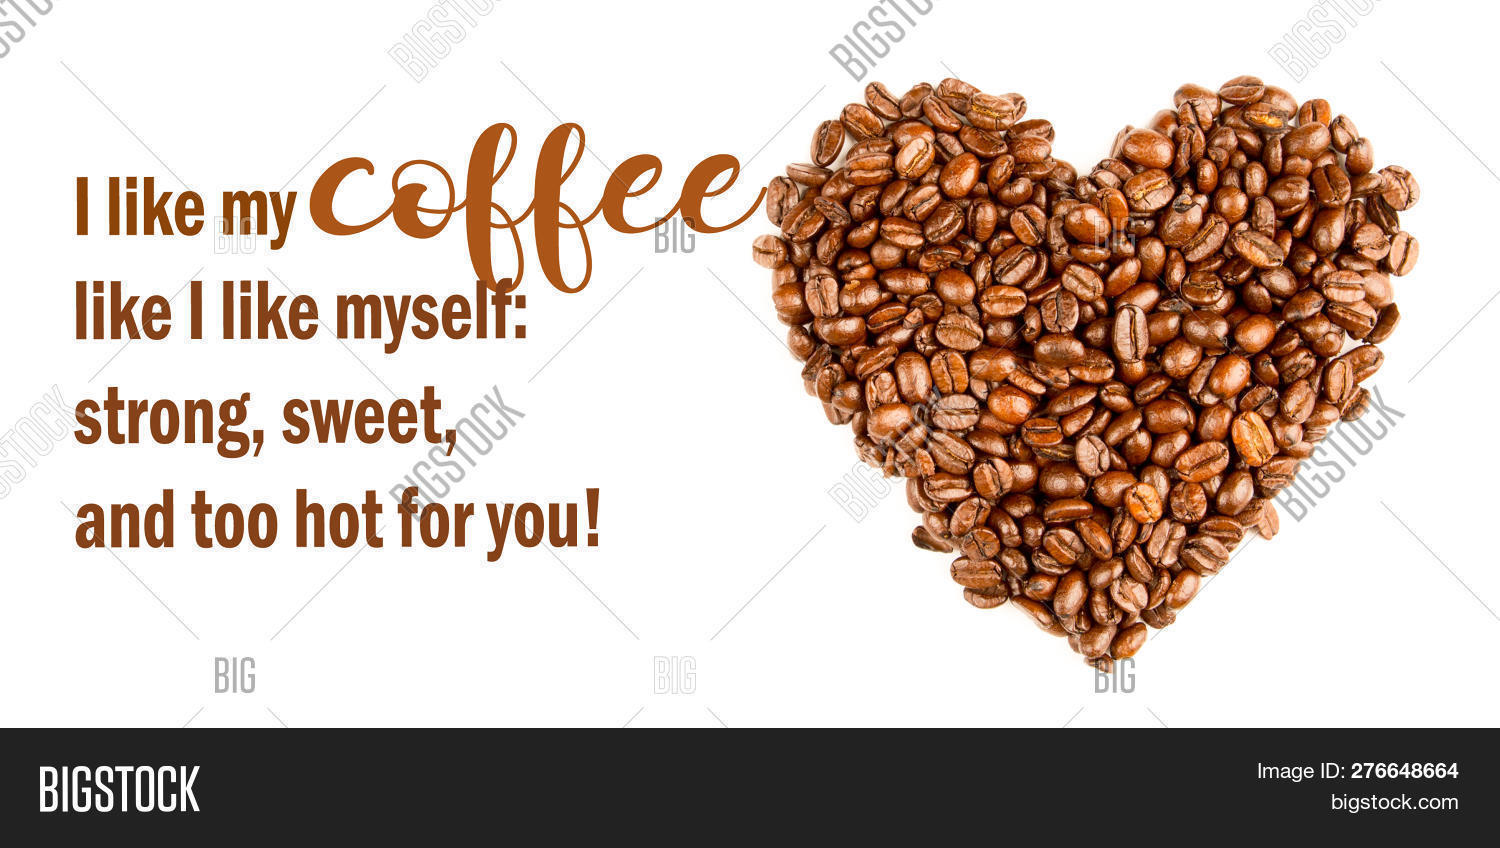 Funny Coffee Memes Image & Photo (Free Trial) | Bigstock #strongCoffee